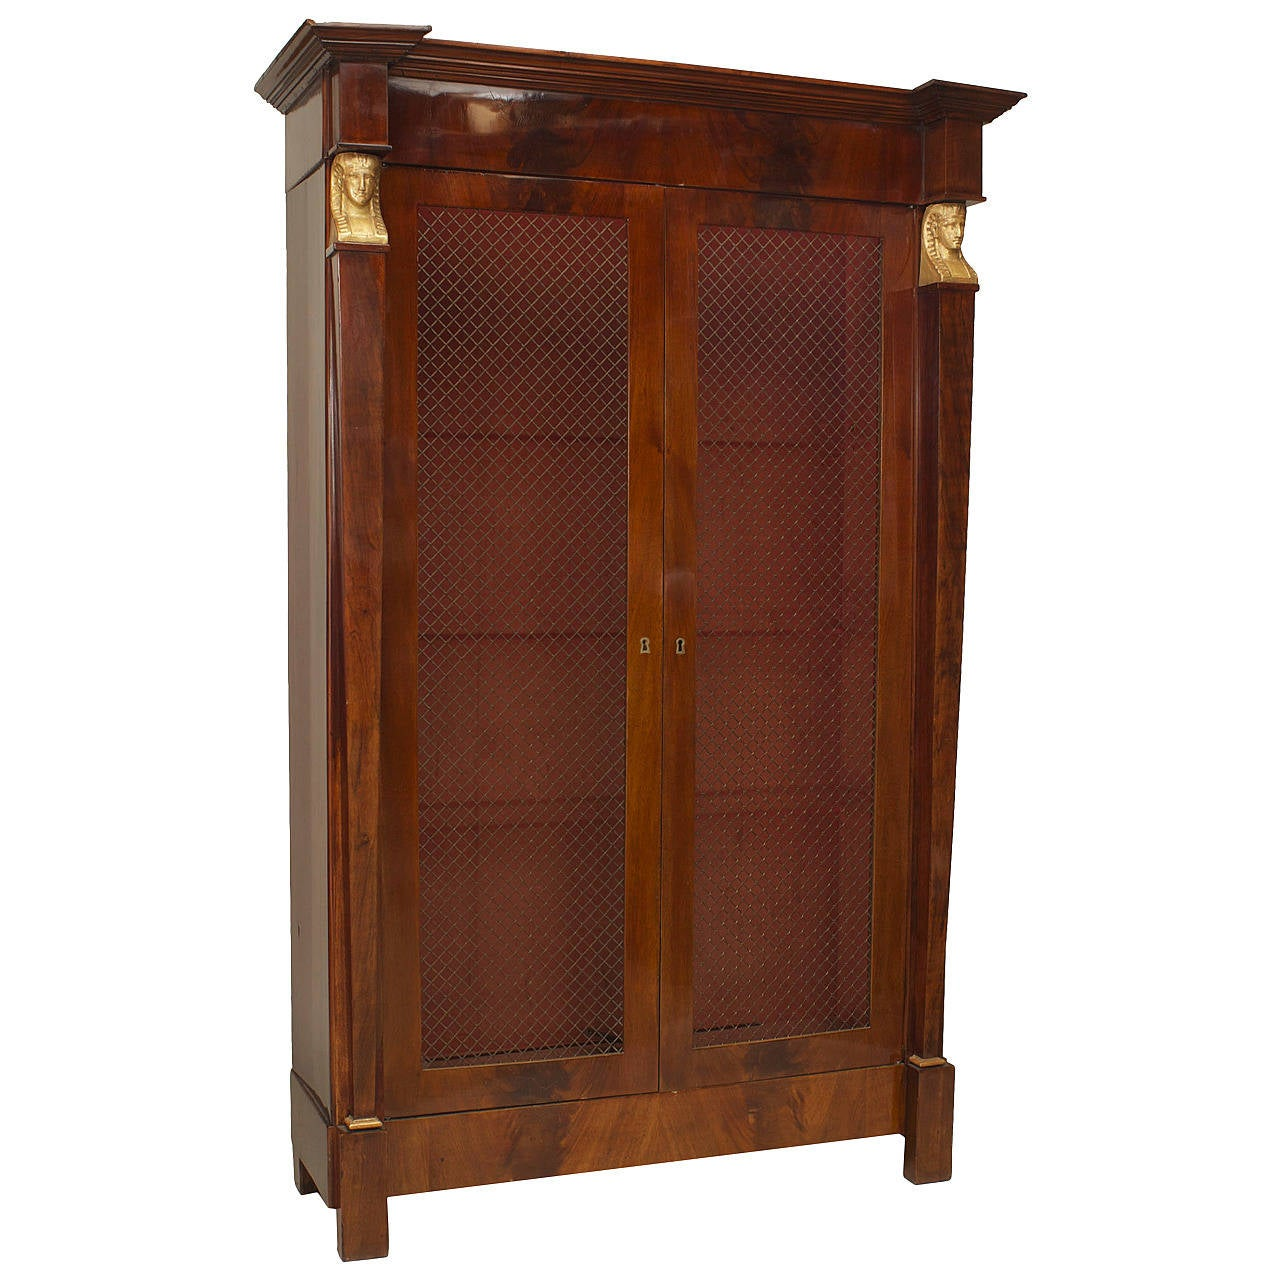 A Beautiful French Empire Bibliotheque Cabinet with Grill Doors ...